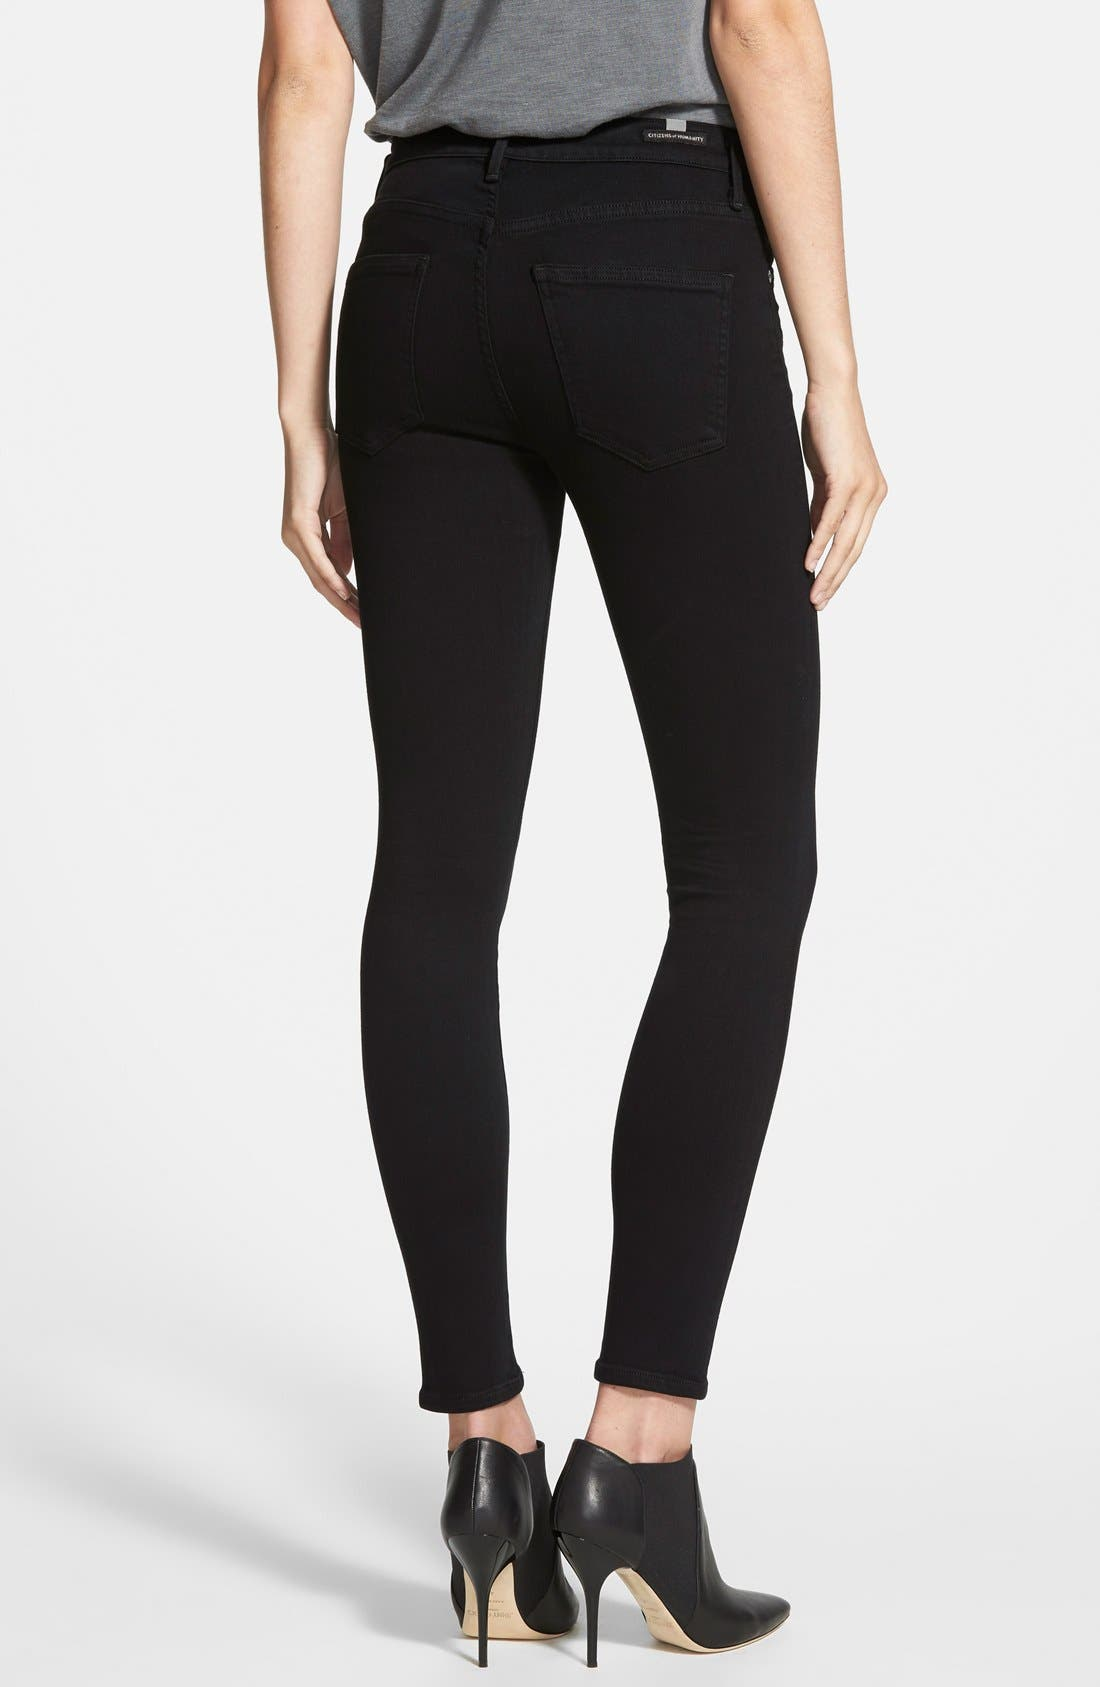 'Rocket' High Rise Skinny Jeans,                             Alternate thumbnail 3, color,